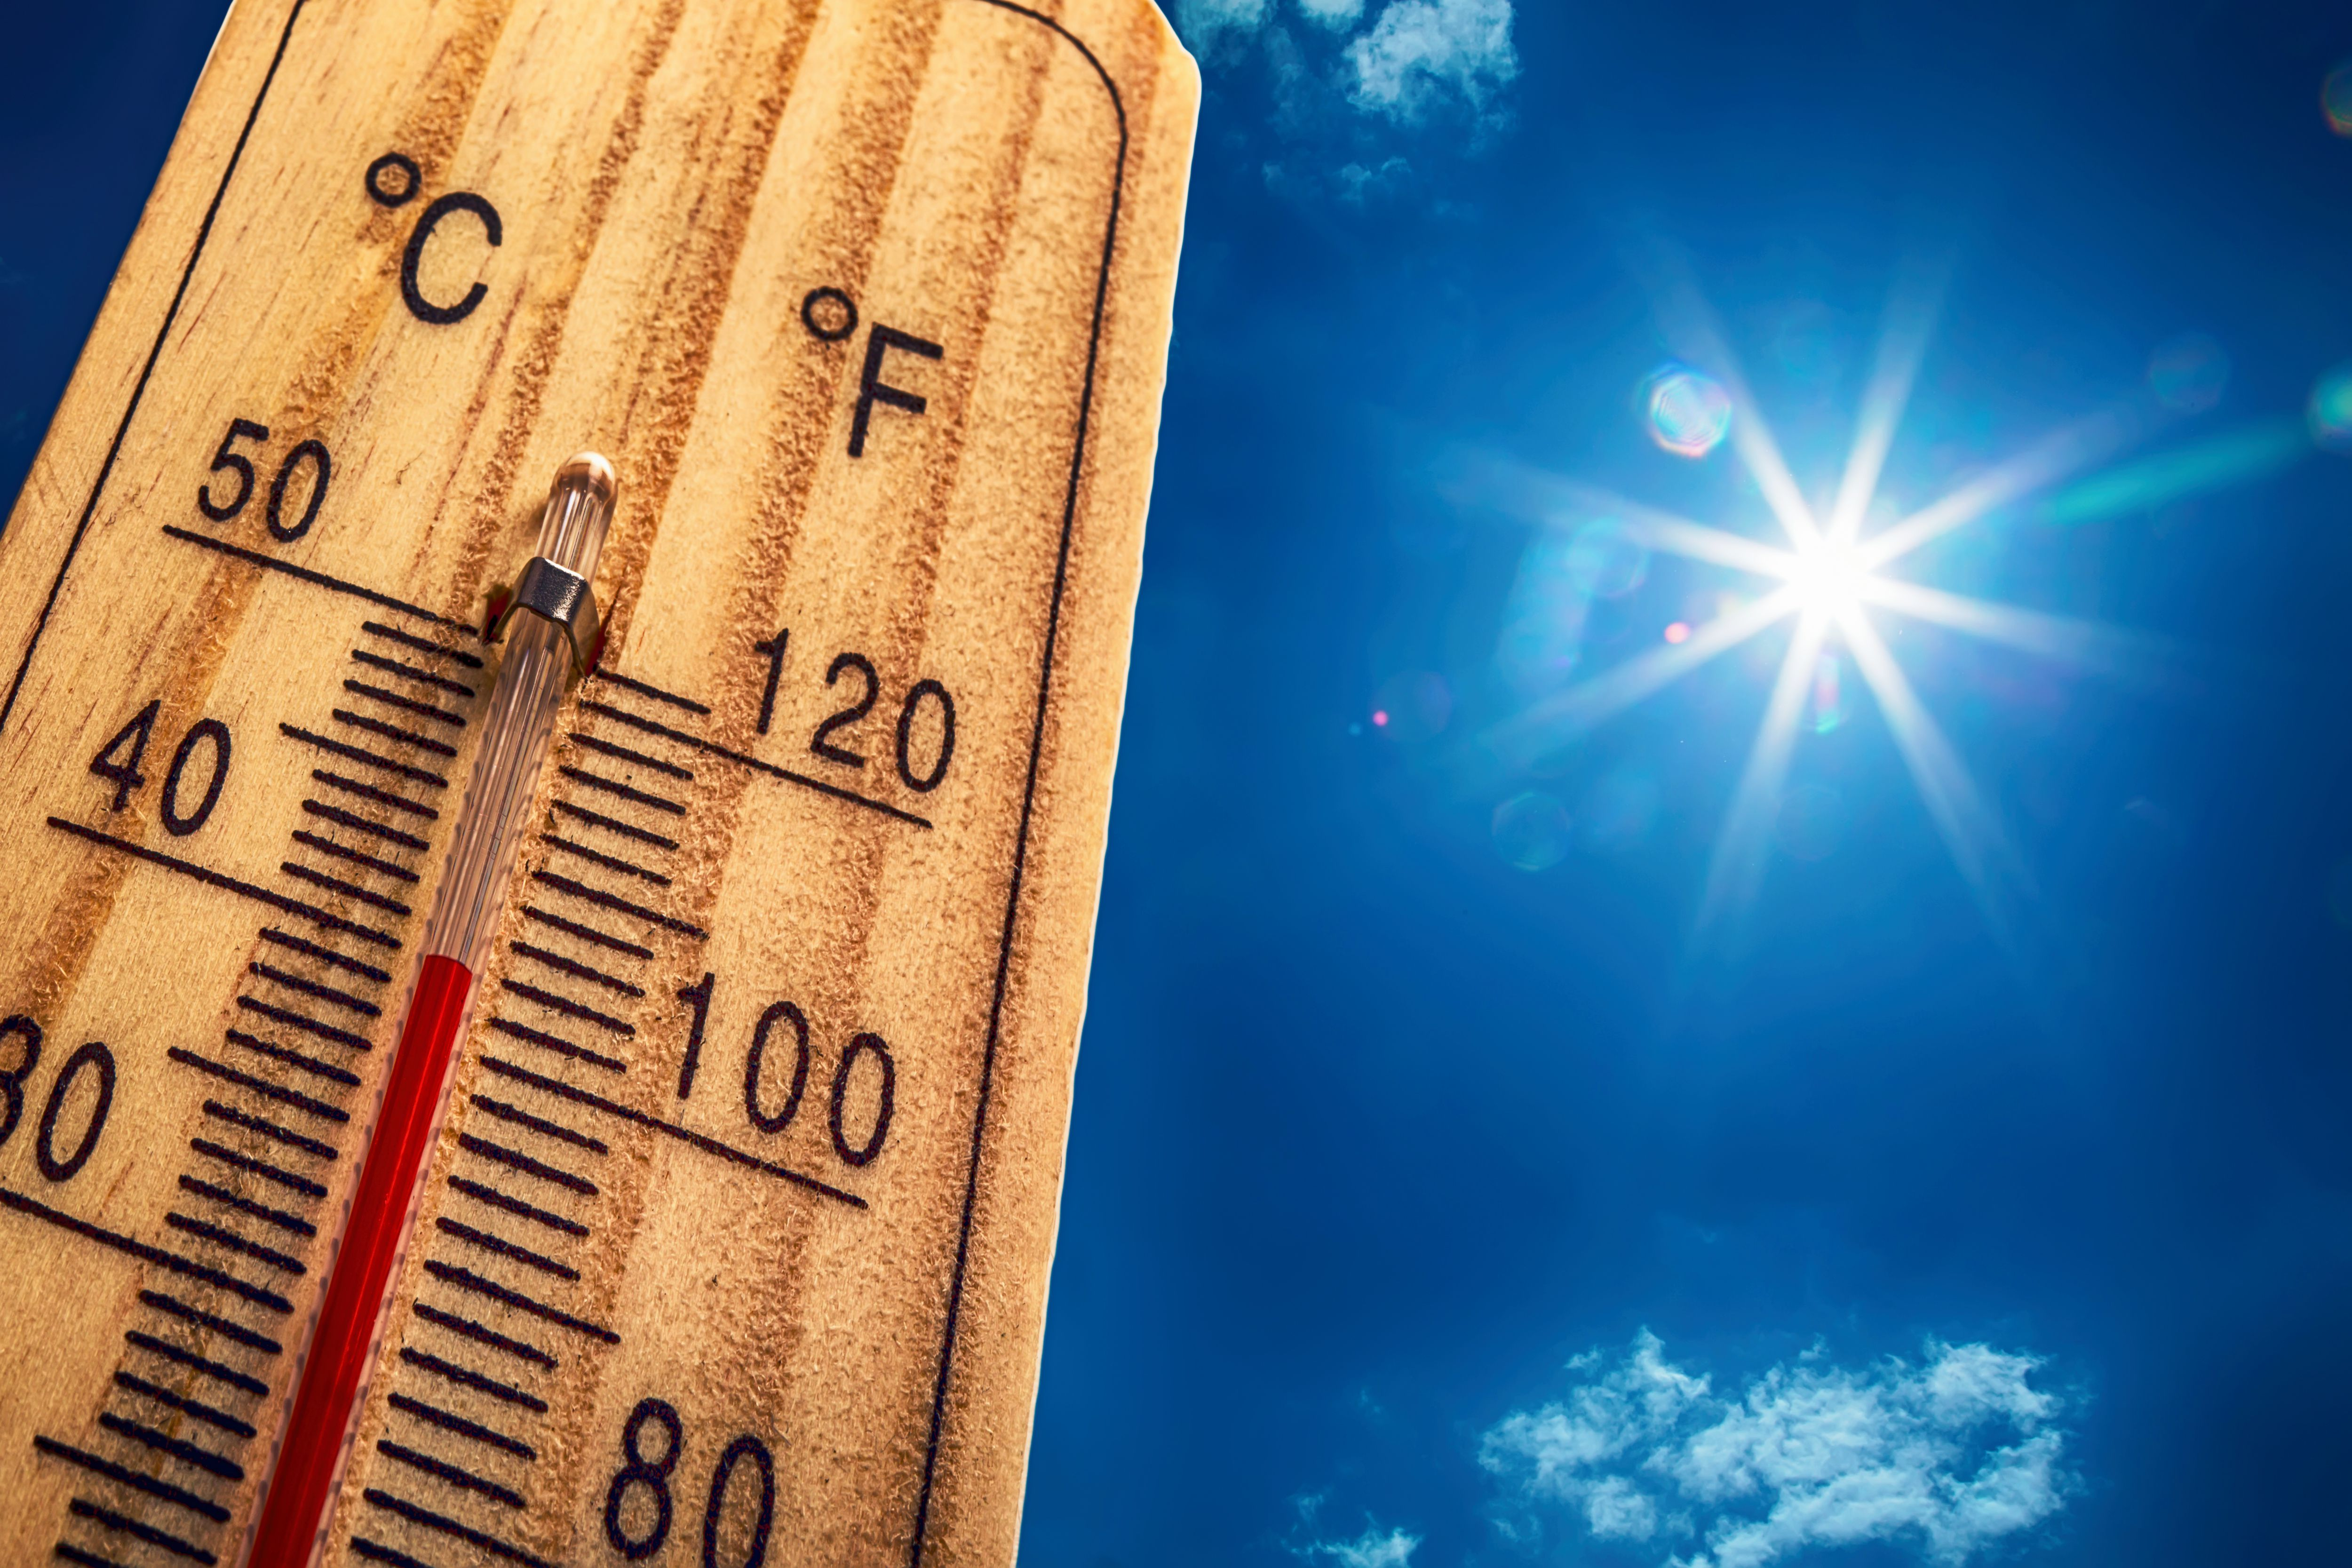 Difference between celsius and centigrade buycottarizona Image collections